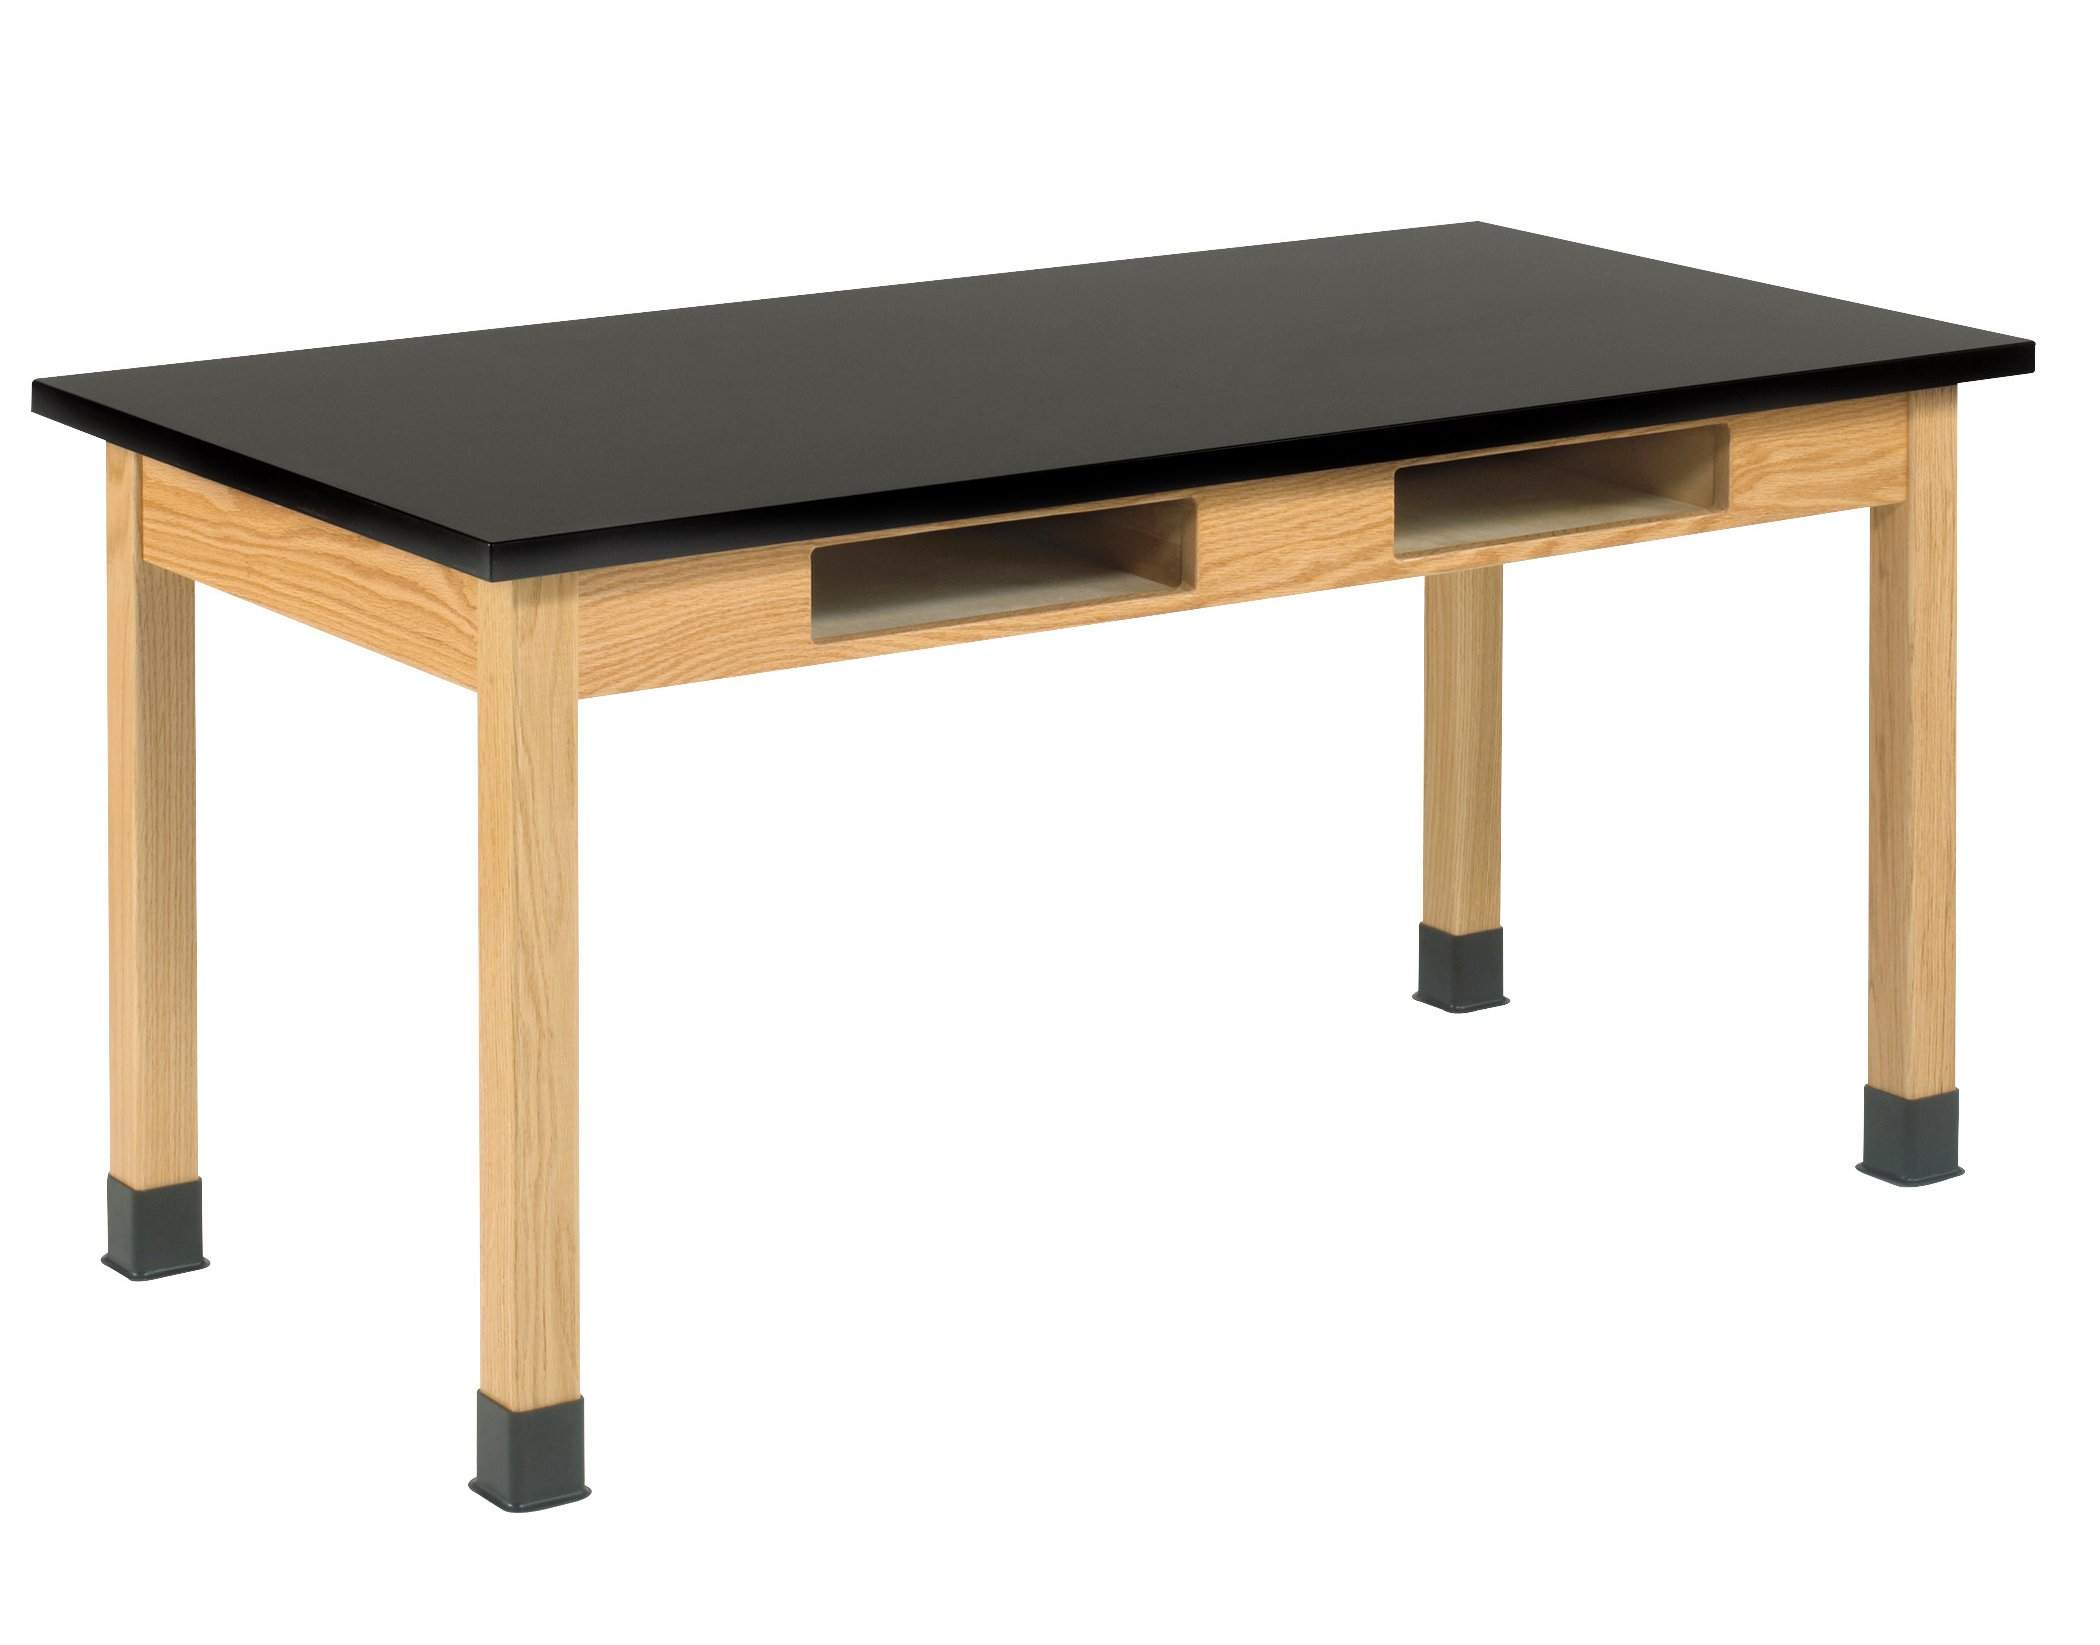 DIVERSIFIED WOODCRAFTS C7146K30N Oak Table with Book Compartments, 1'' Epoxy Resin Top, 60'' W x 30'' D x 30'' H